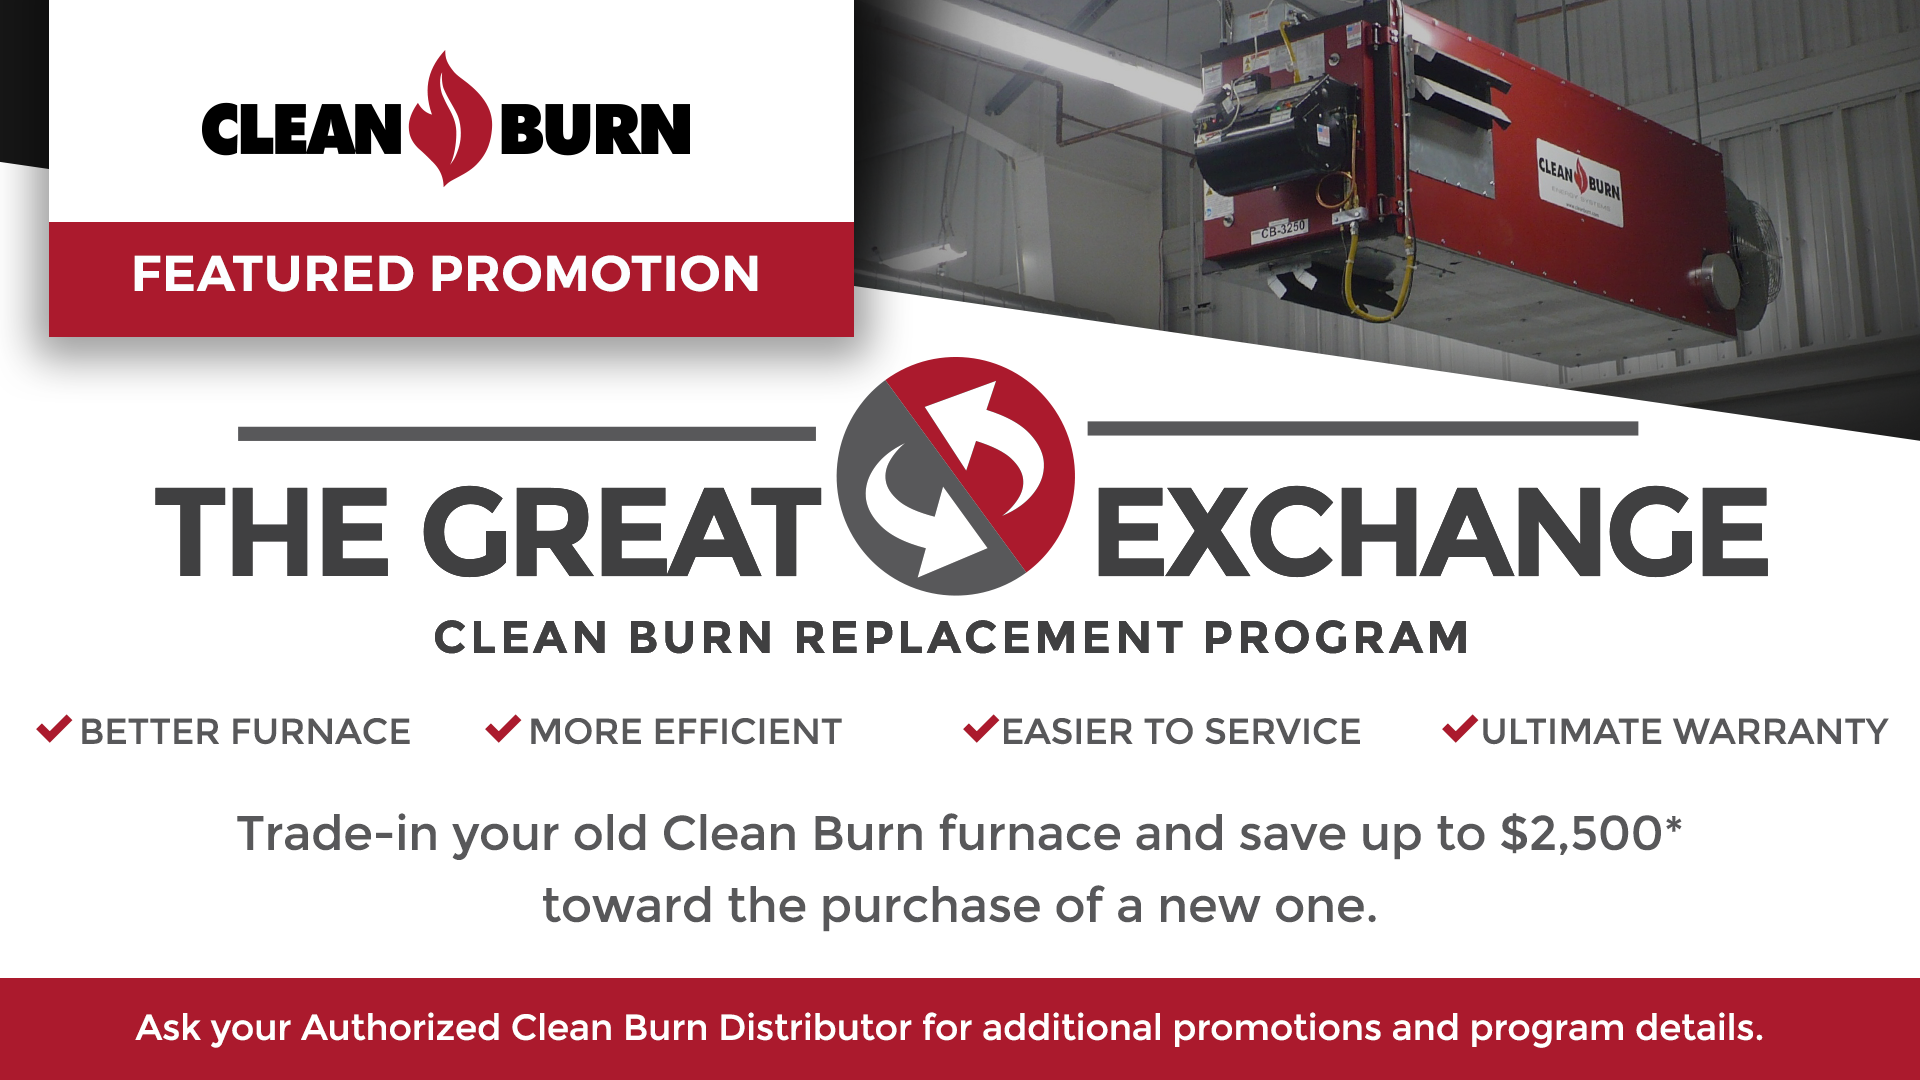 cleanburn2018-promotions-greatexchange